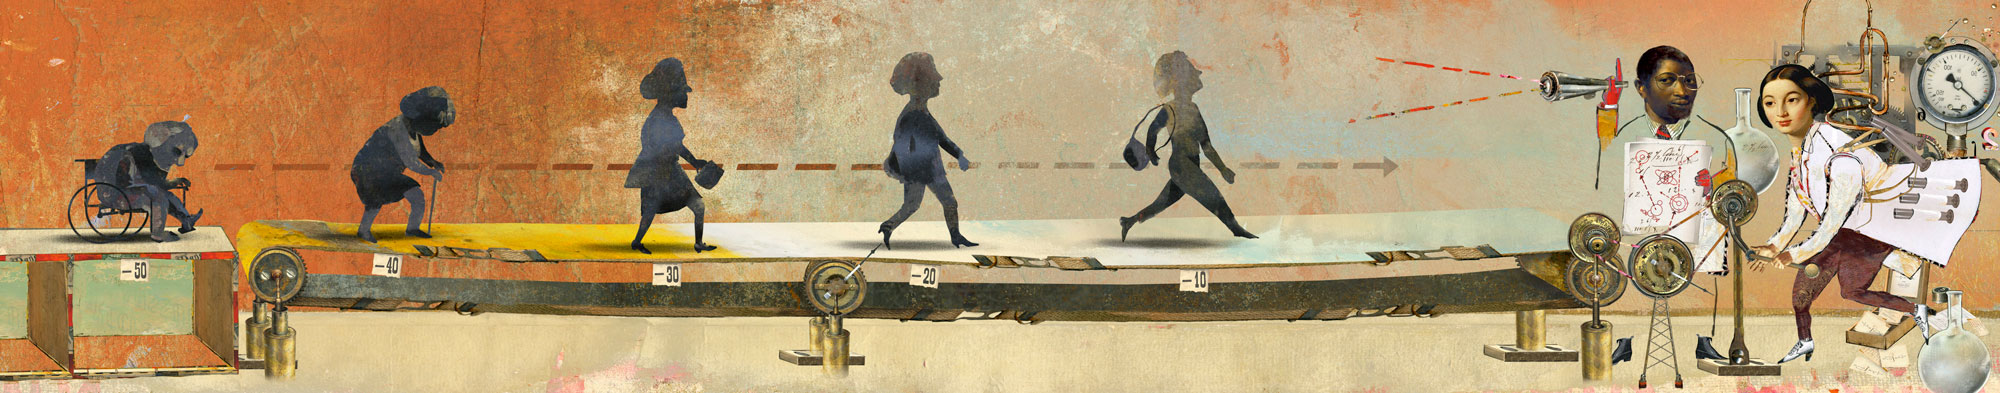 Illustration of people on a long treadmill